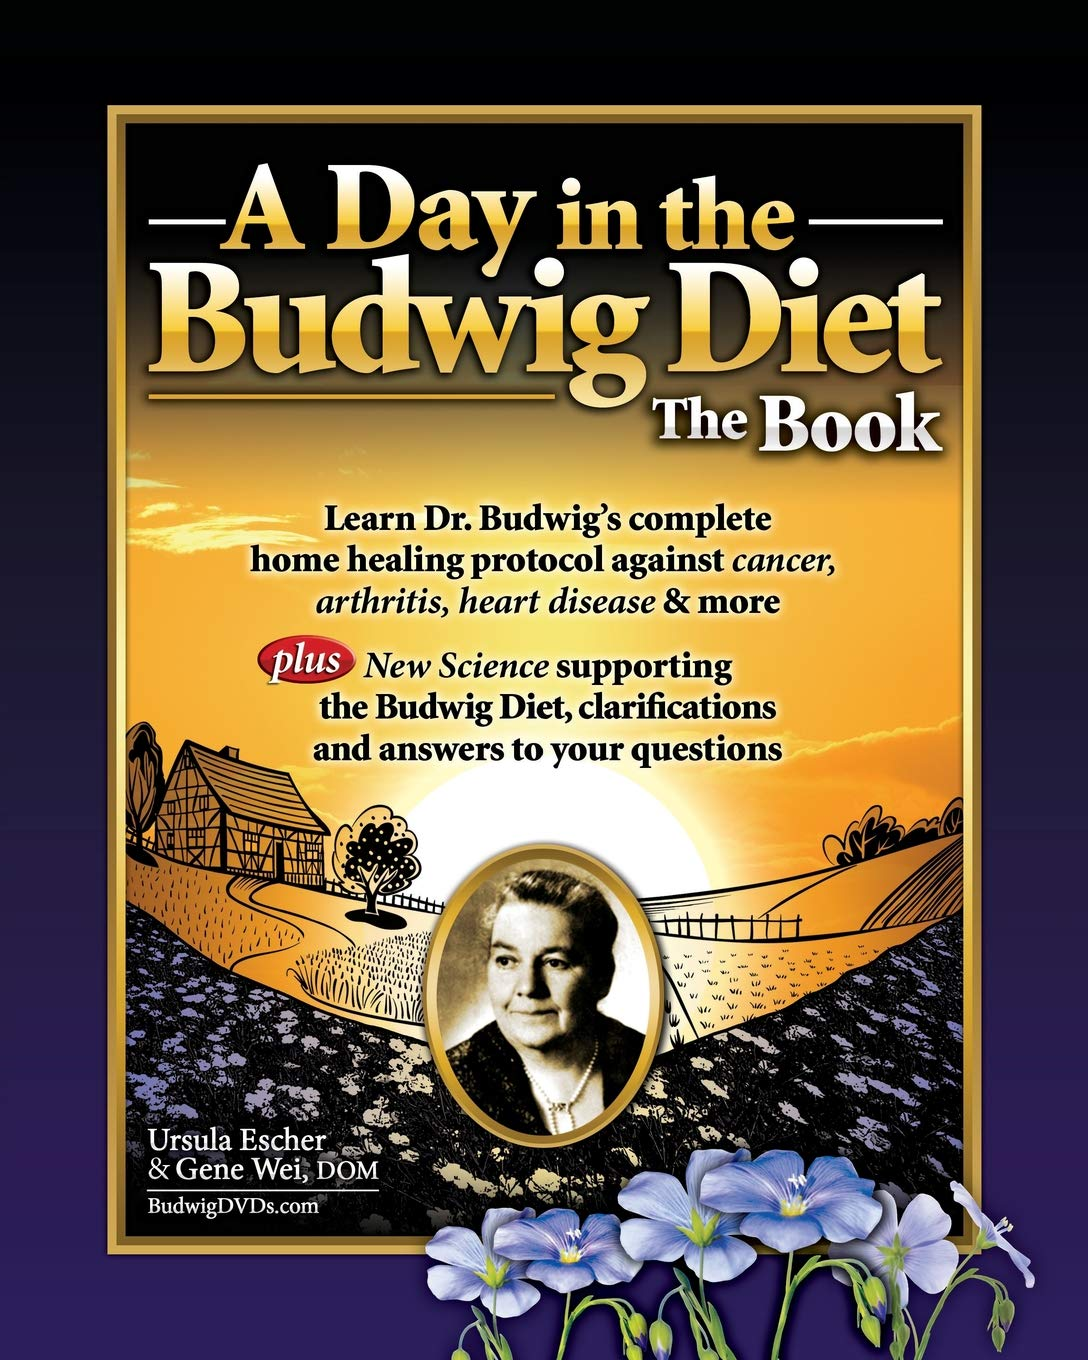 The Budwig Diet & Protocol